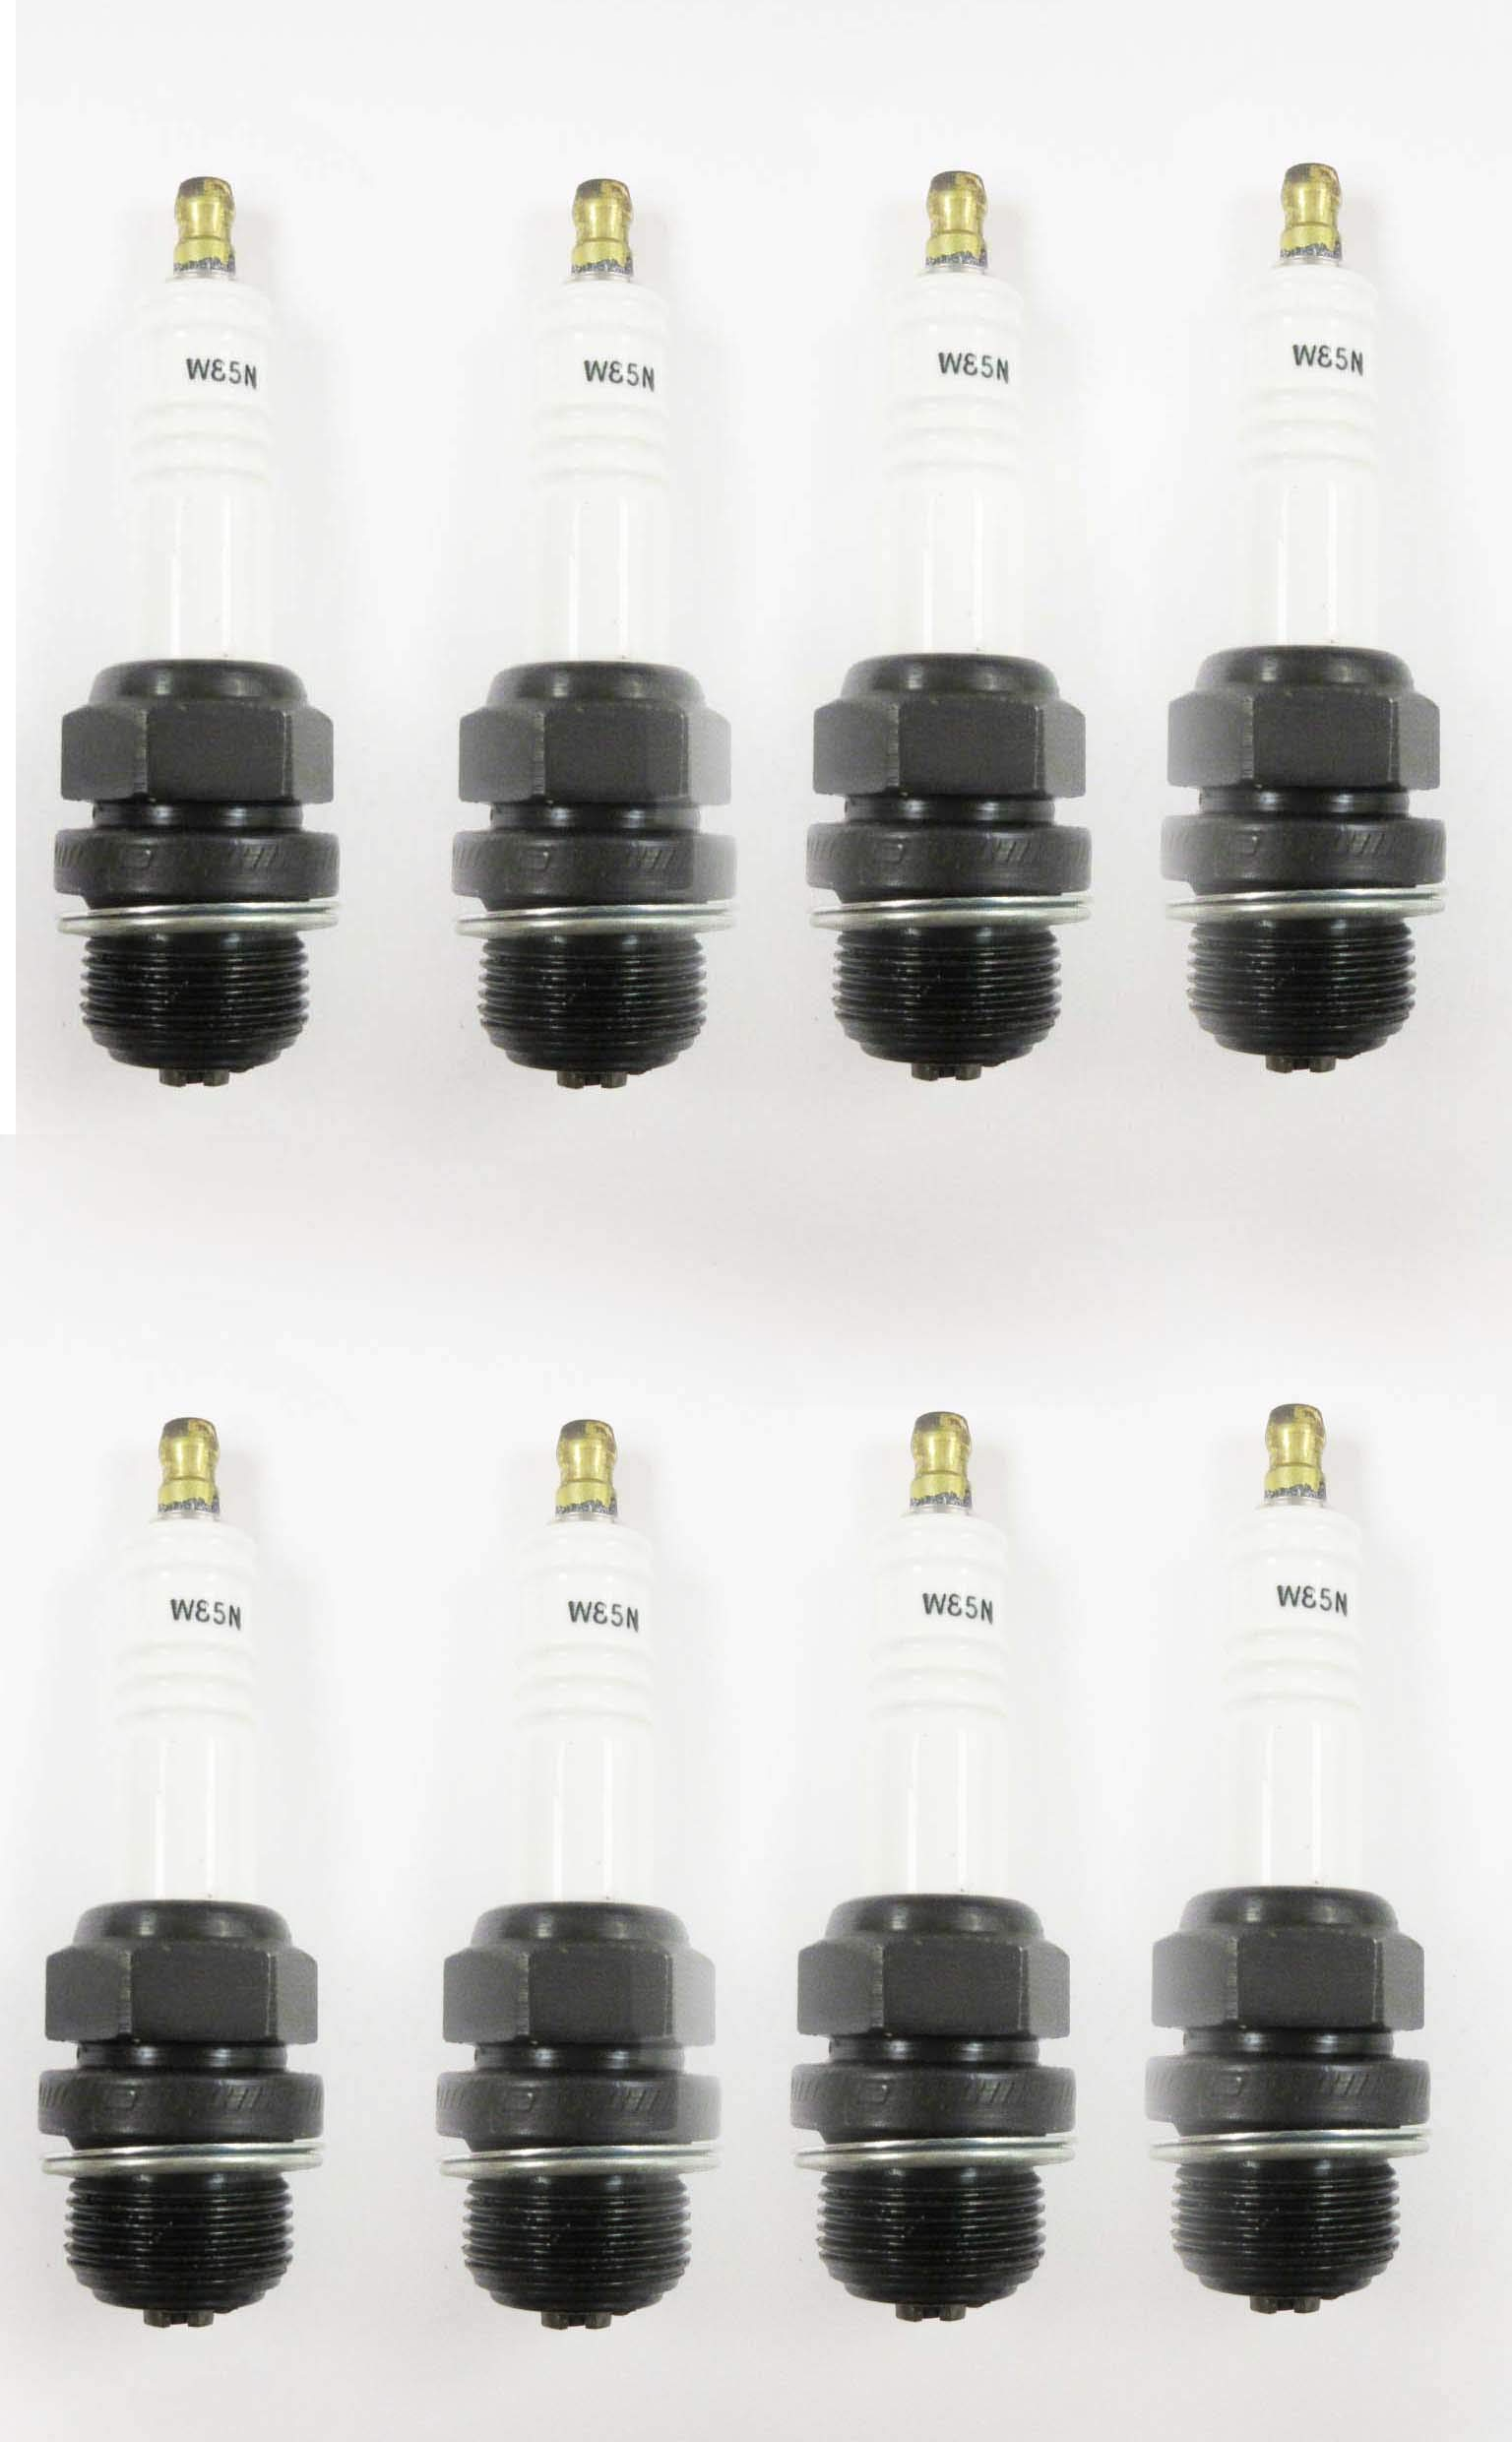 Champion 203 W85N Industrial Spark Plug Pack of 8